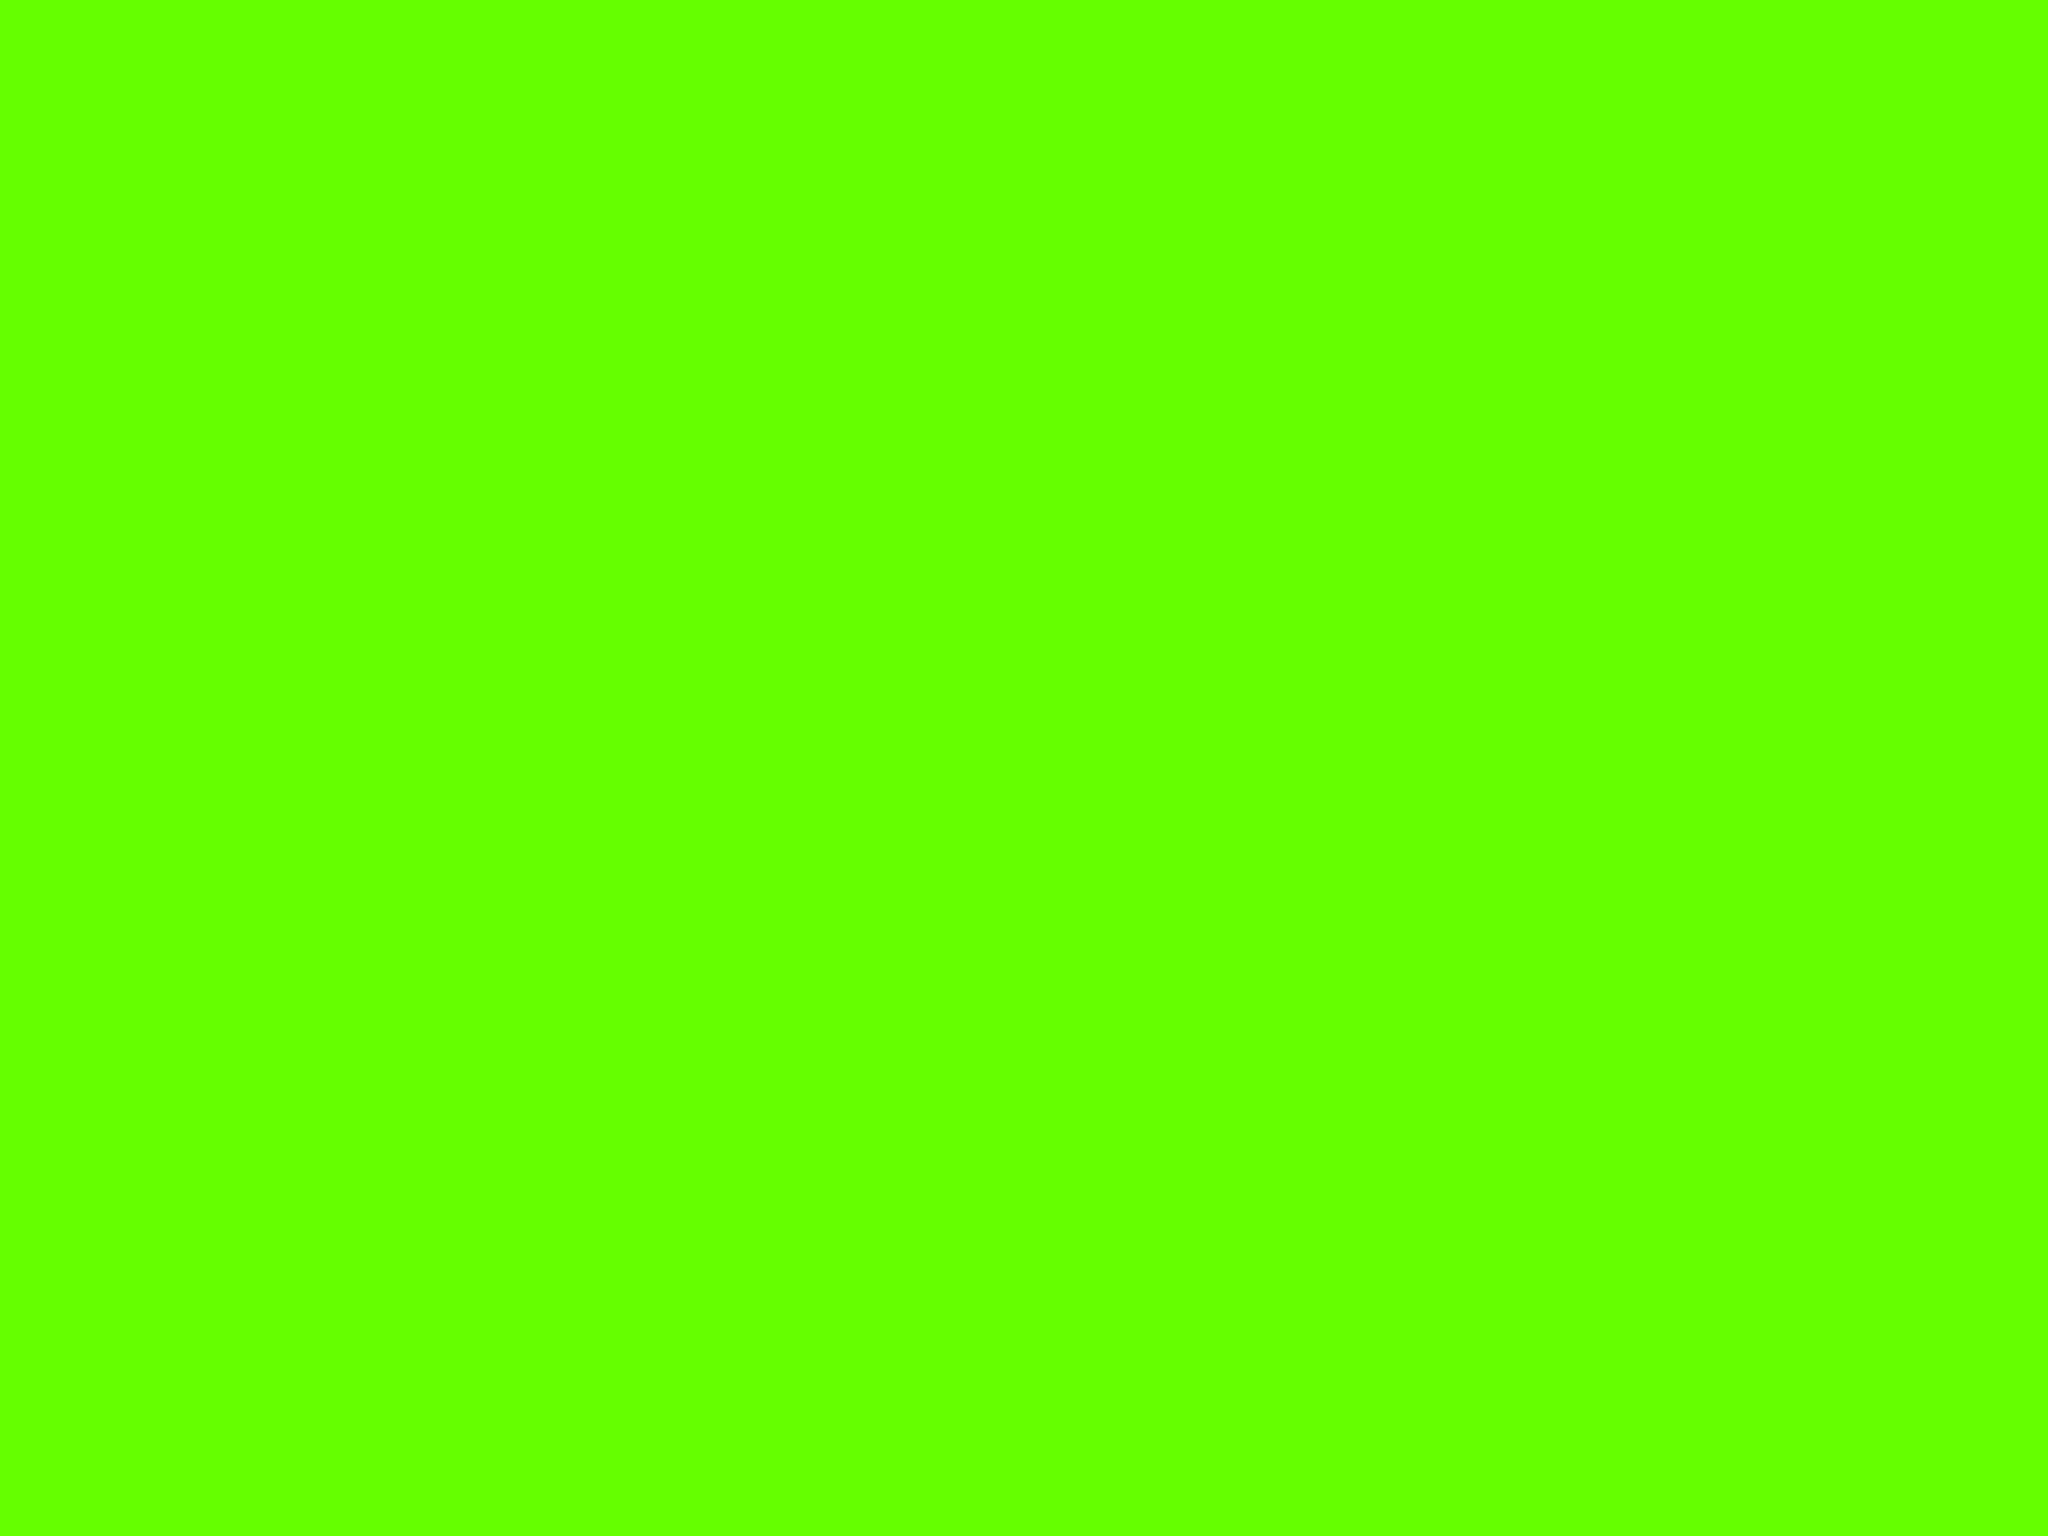 2048x1536 Bright Green Solid Color Background